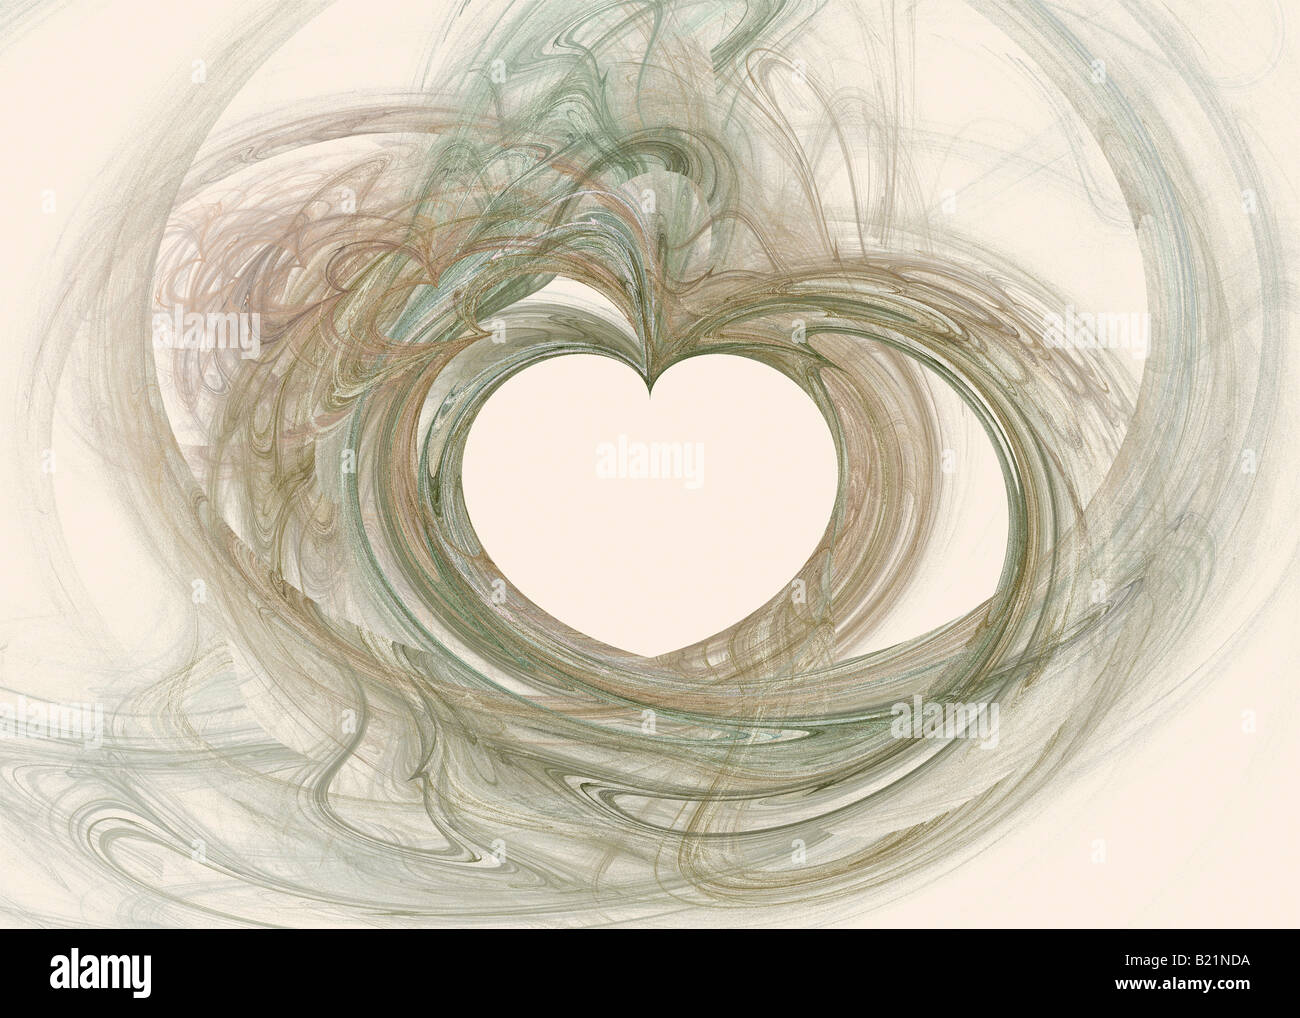 Abstract Fractal Image with Heart Motif Rendered in Warm Tones - Stock Image